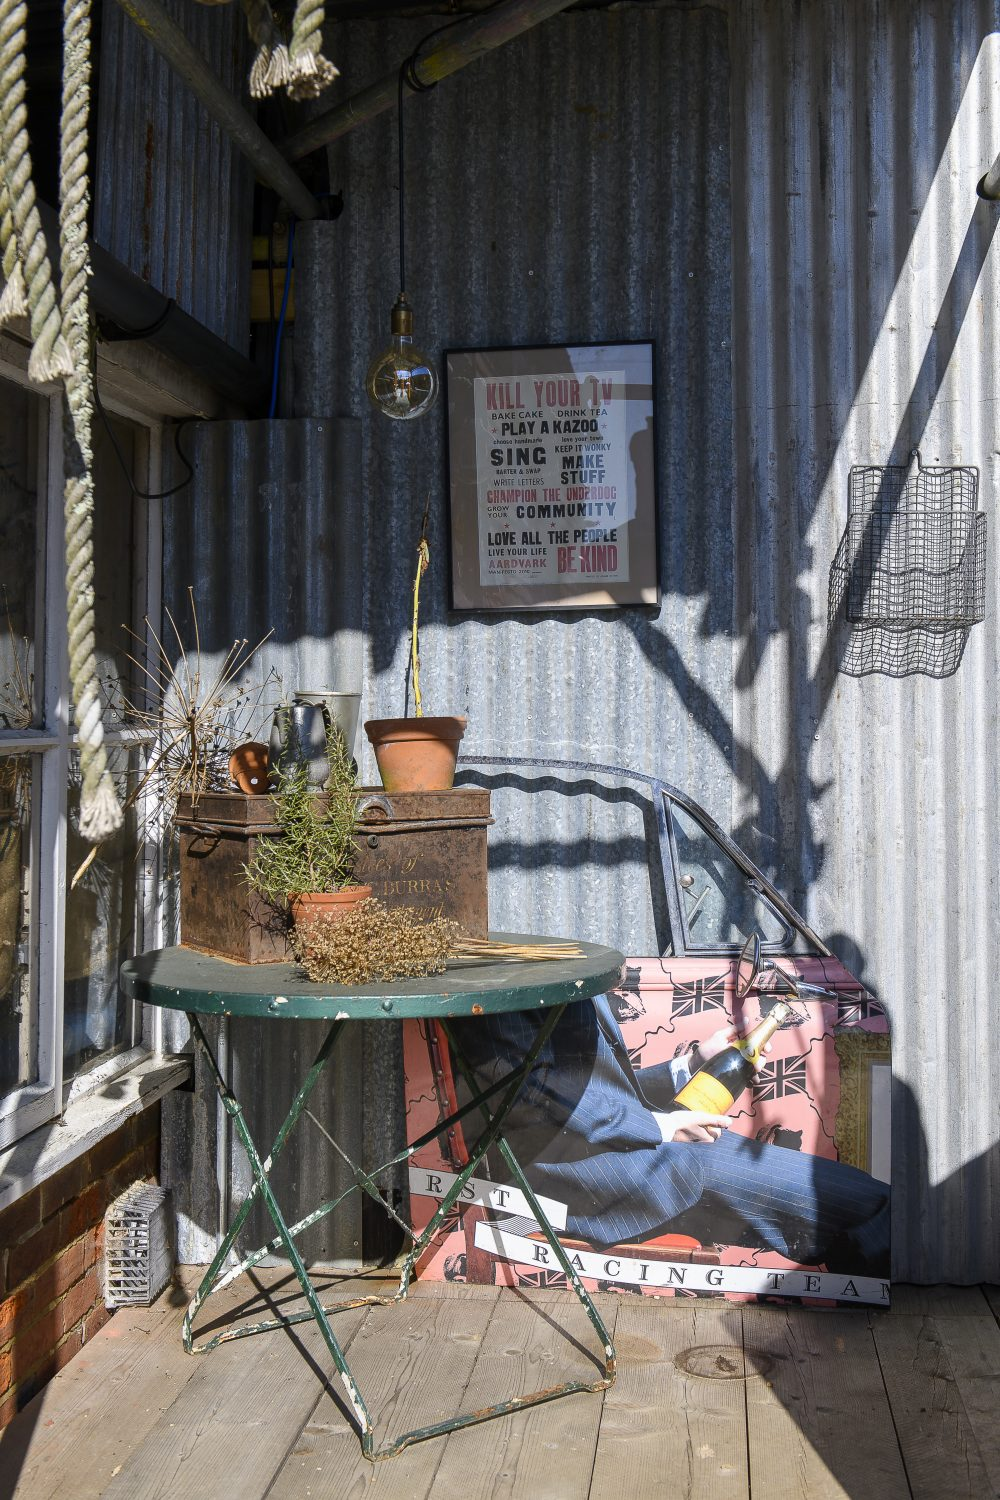 There's always something to catch the eye, the homely and welcoming theme continues outside with interesting displays of vintage objects and carefully considered artworks